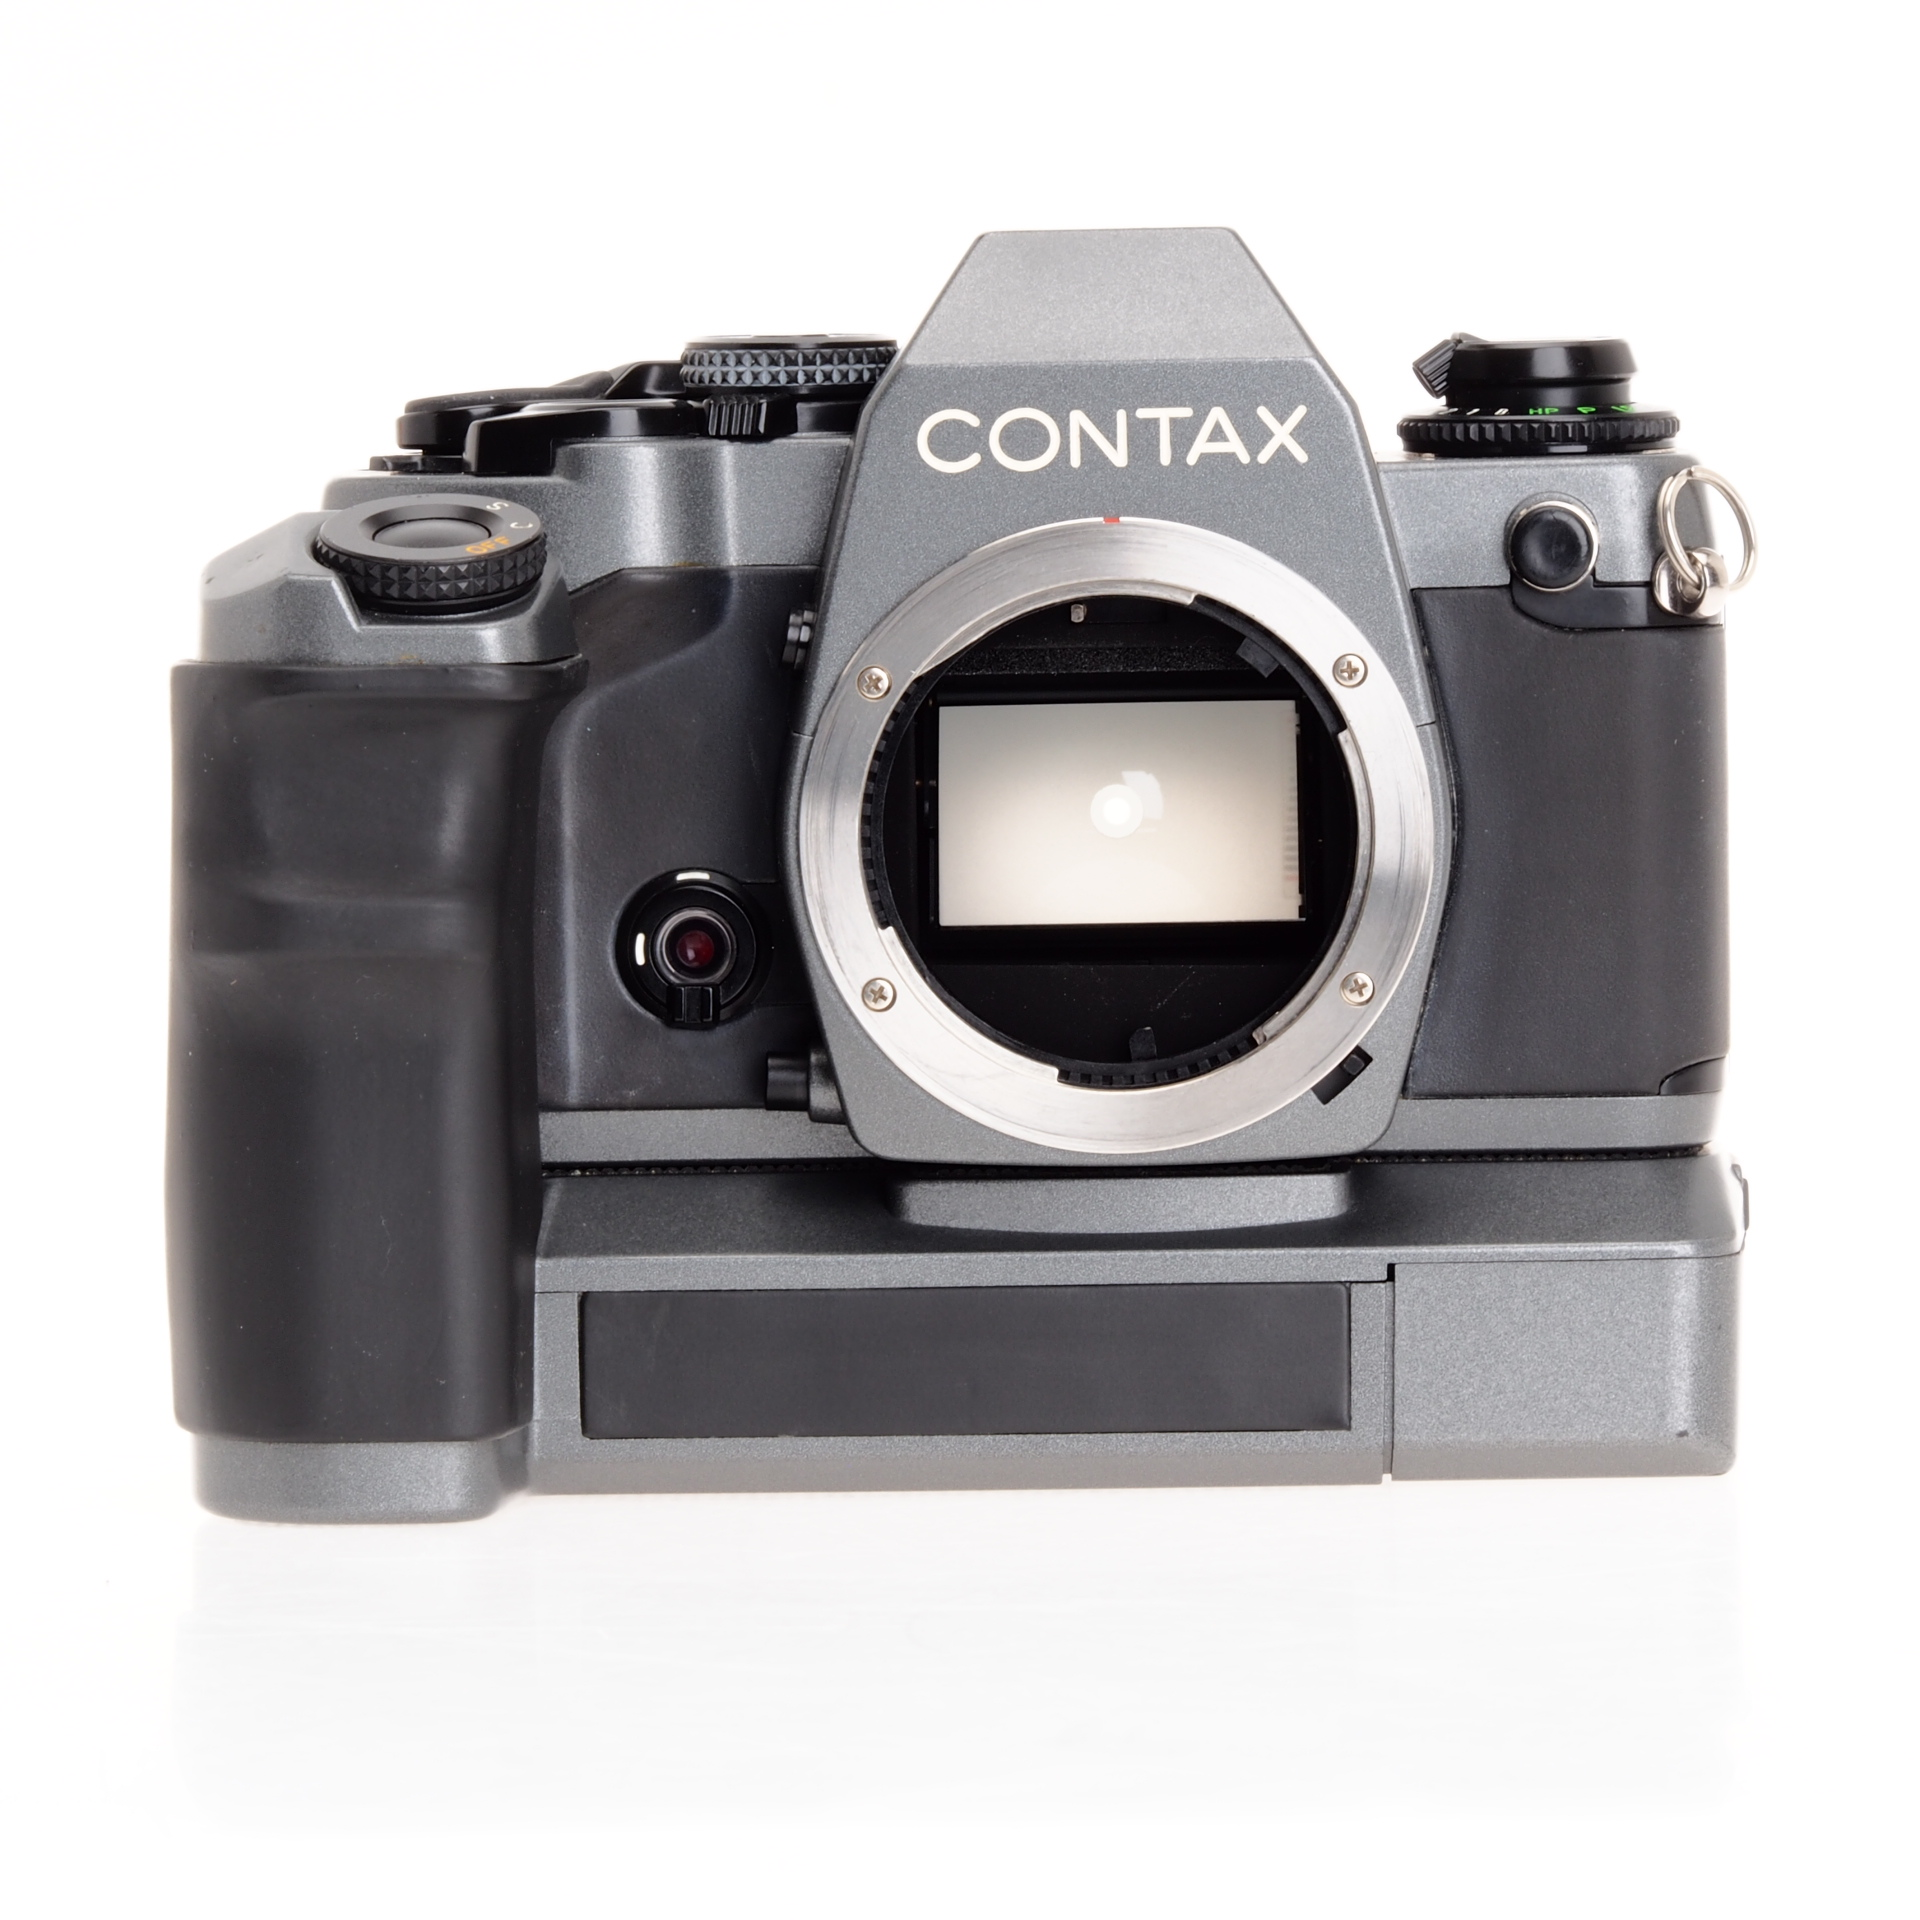 Used Cameras Film Slrs National Camera Exchange Working Of Digital Contax 159mm 10th Anniversary Edition Titanium 35mm Slr W W7 Winder Condition Vg Only Not